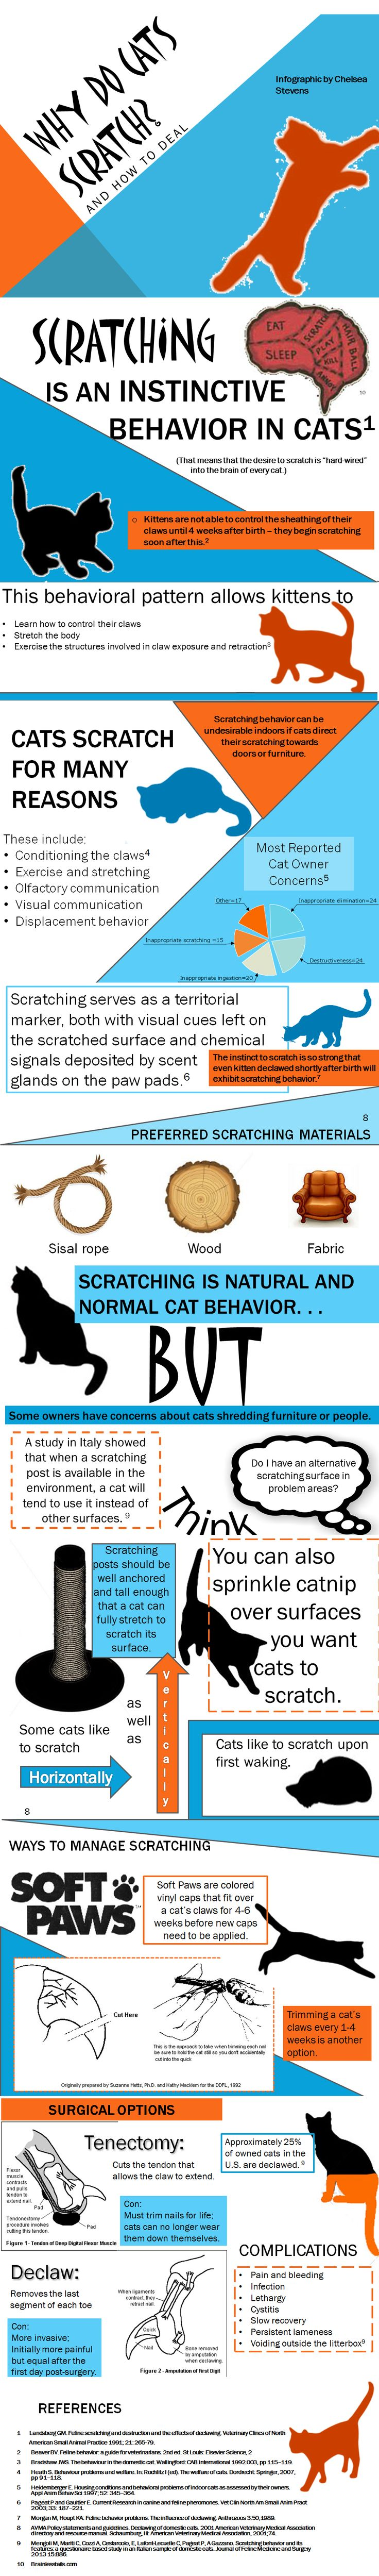 Cat scratching behavior infographic. However, we strongly disagree with the surgical options - it's painful, unnecessary, and hampers a cat's ability to defend itself. Please consider learning to trim their claws, or treat your kitty to a mani/pedi at your vet's office.